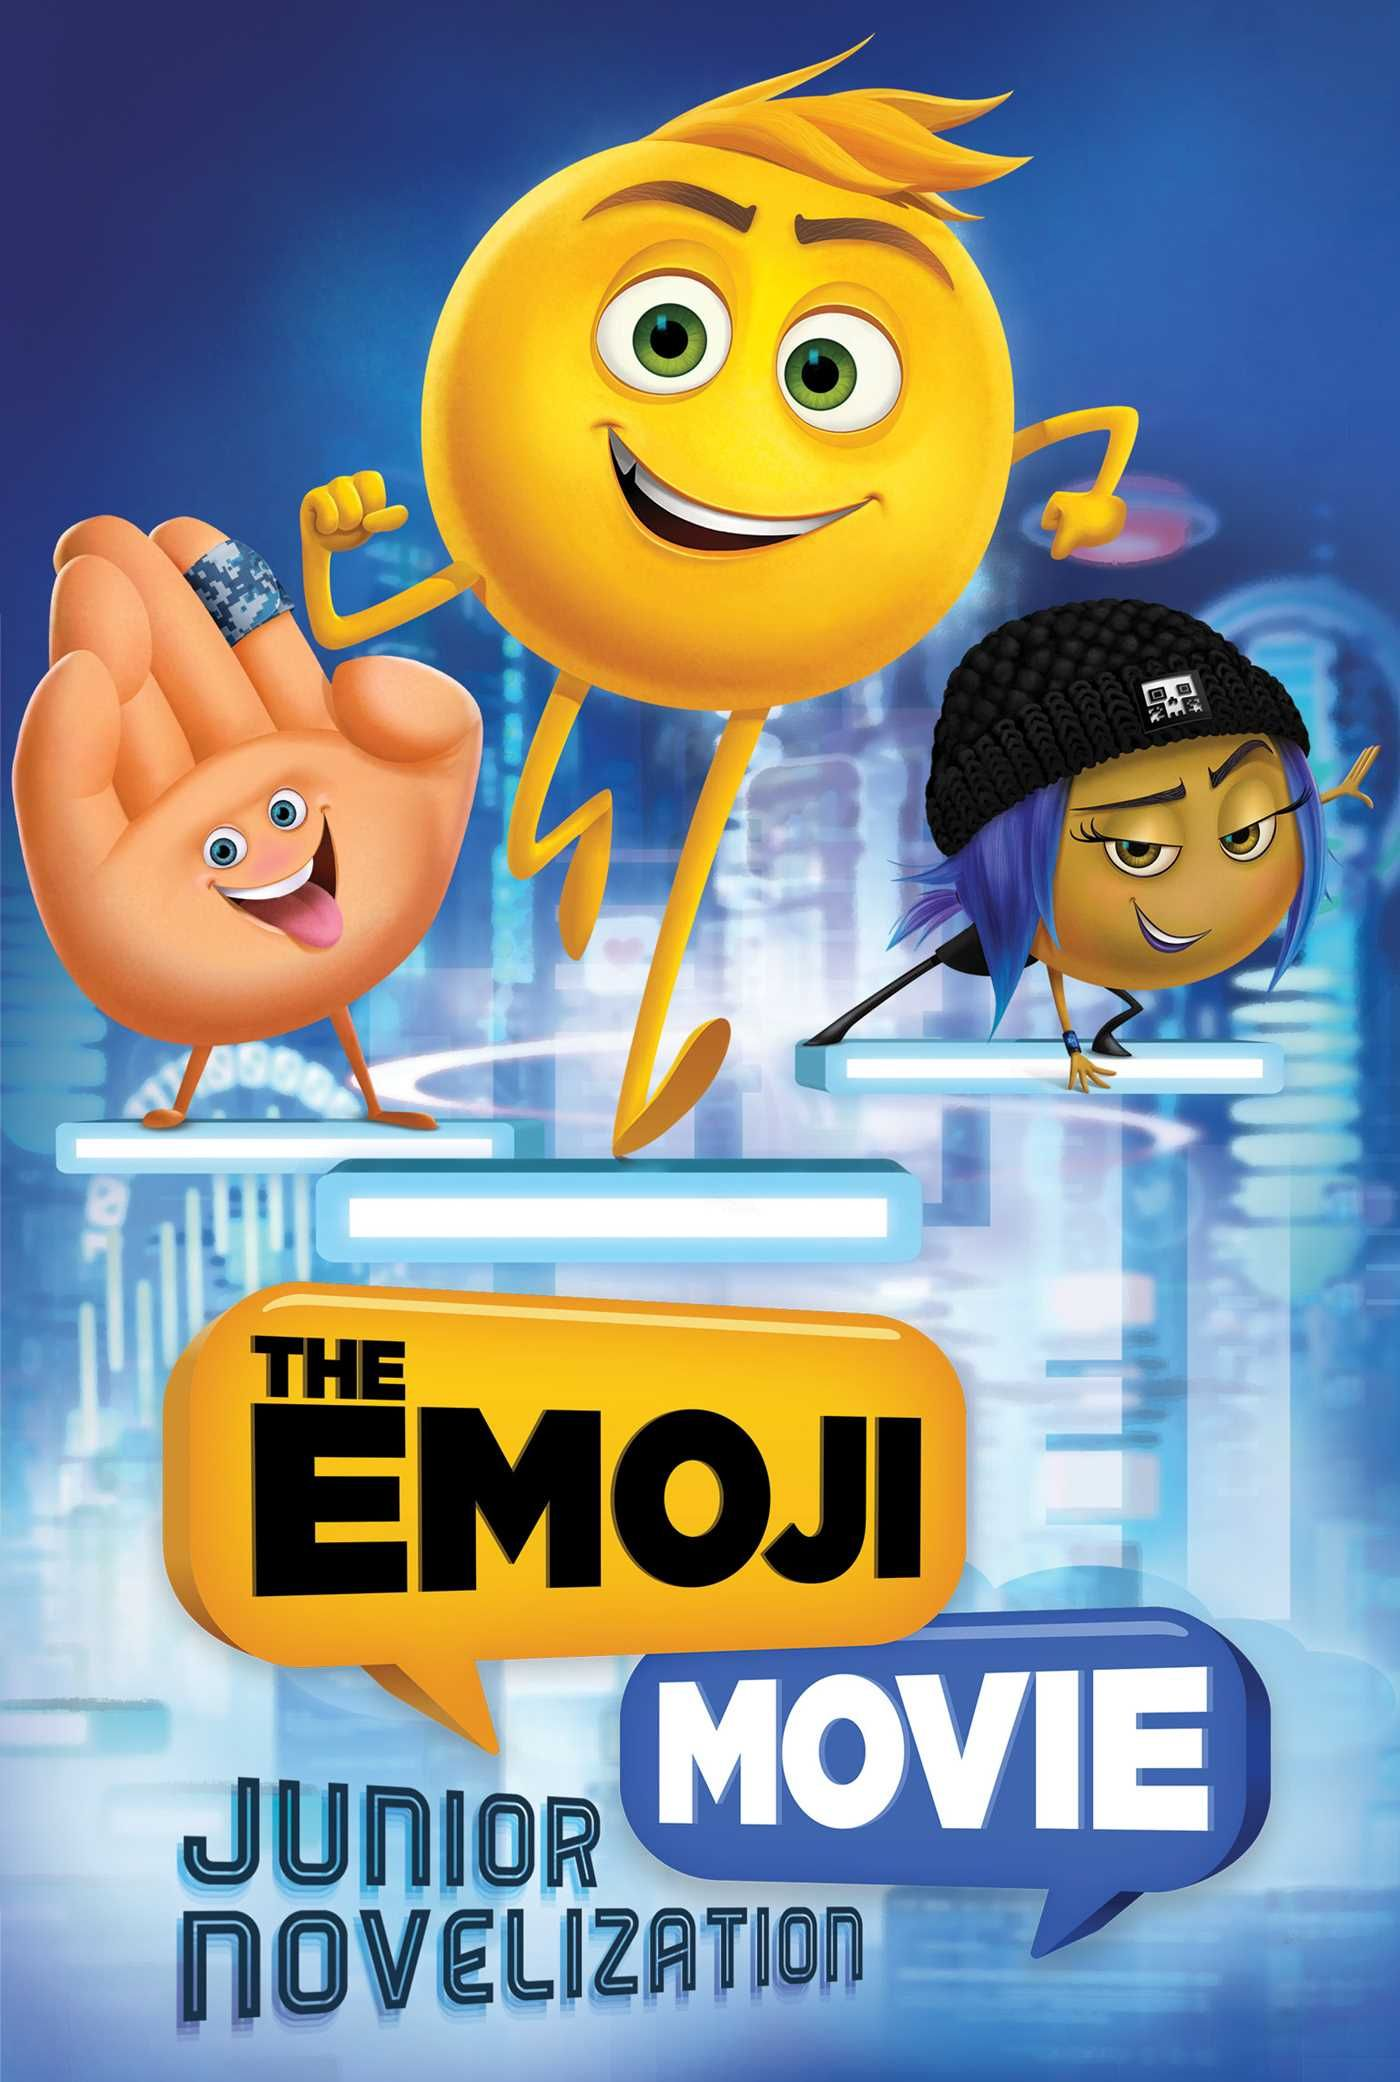 Capa The Emoji Movie Torrent Dublado 720p 1080p 5.1 Baixar